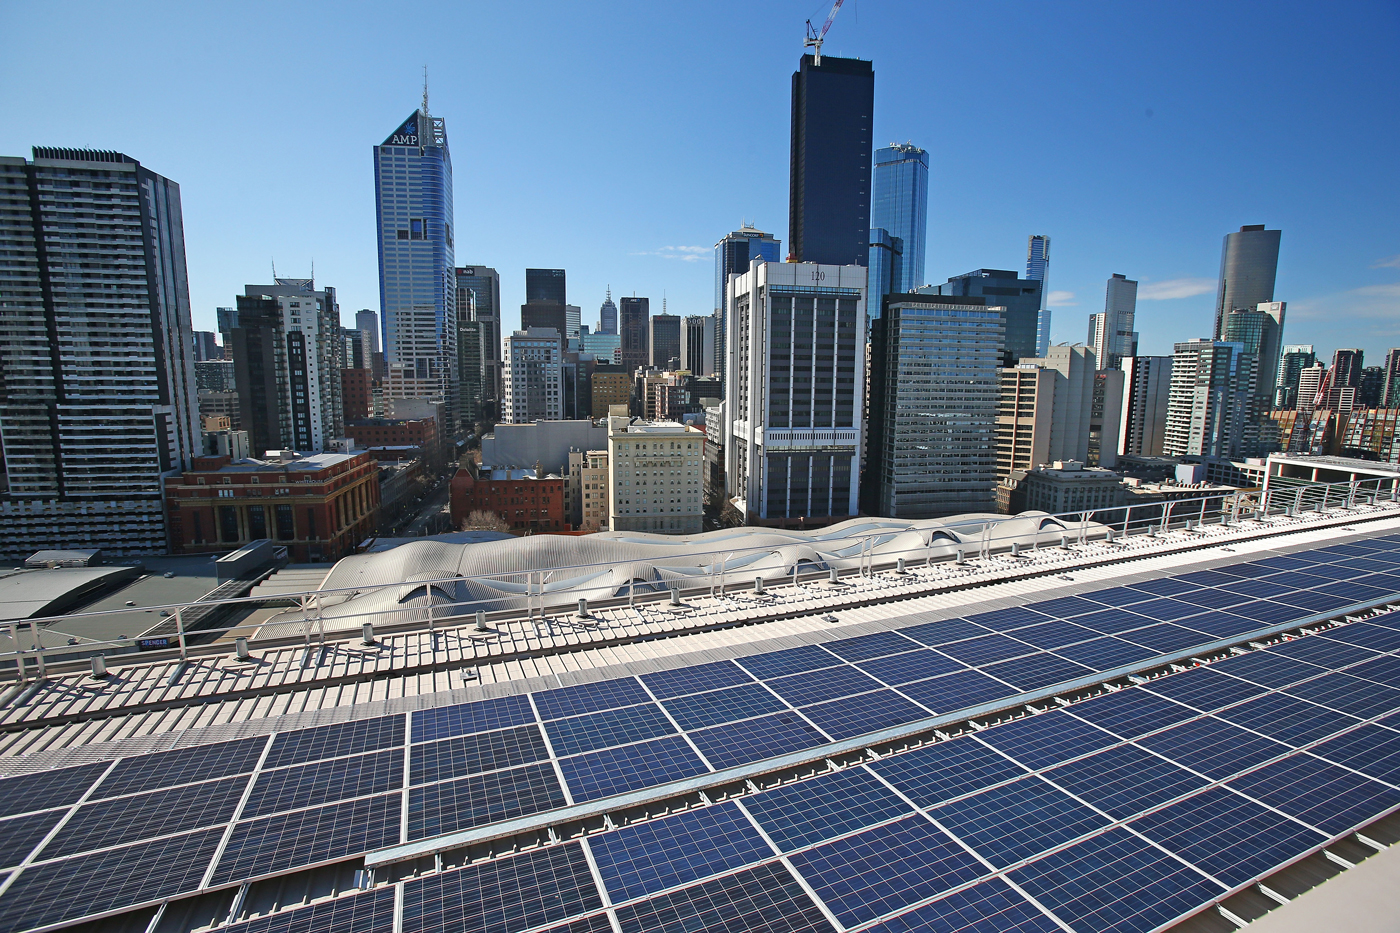 Rooftop solar panels, such as these in Melbourne, currently account for around 16 percent of renewable electricity generation in Australia.